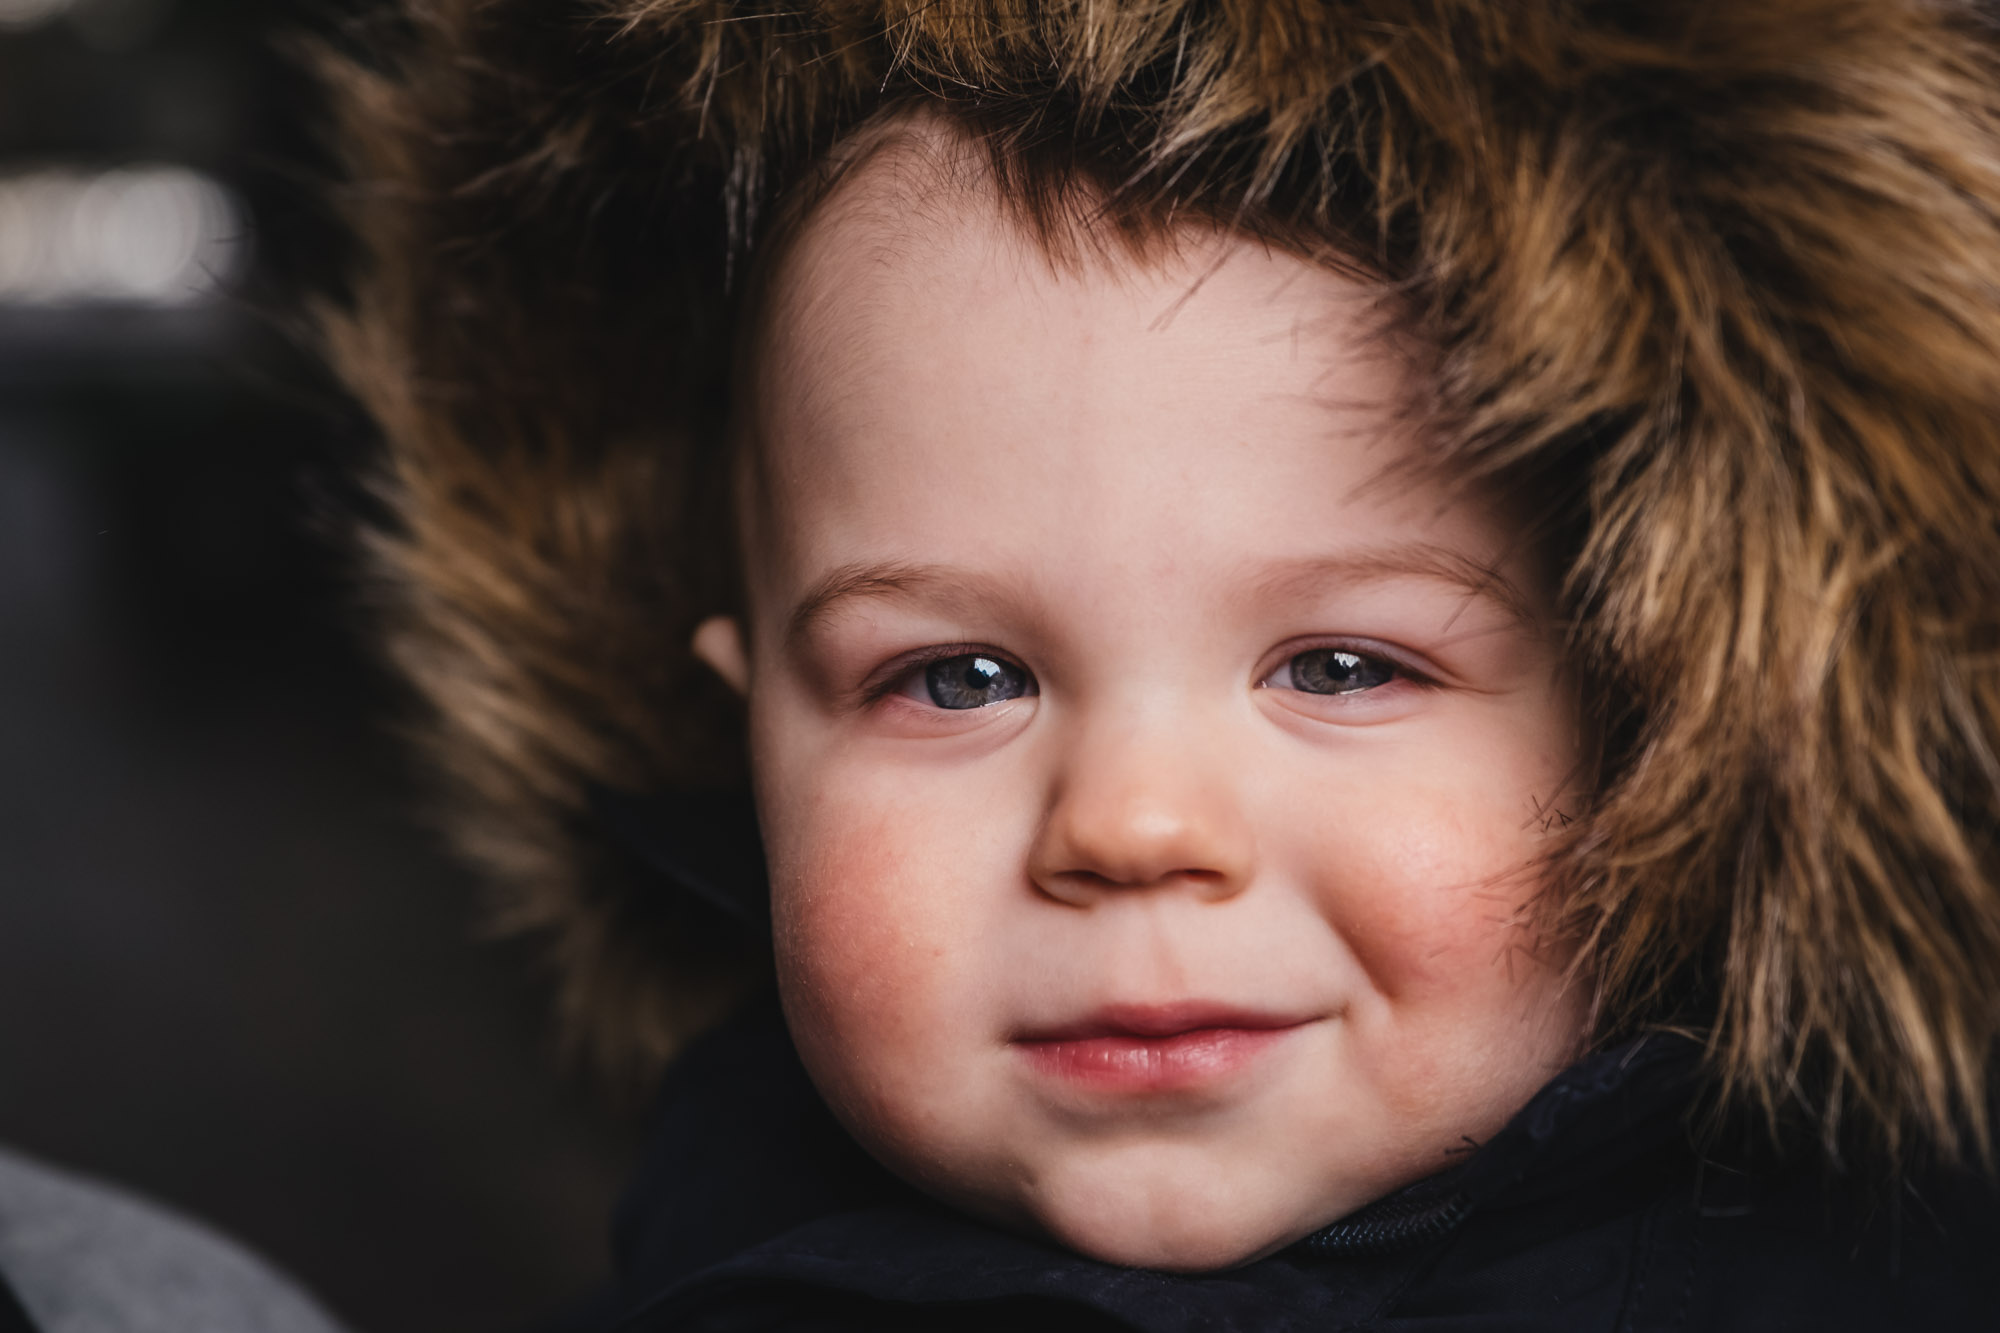 """- """"David took some amazing photos of our little guy despite less than ideal conditions (unseasonal snow and a very cranky 1 year old). He was friendly, professional, and has been so wonderful to work with after the session too."""" - Ainslie"""